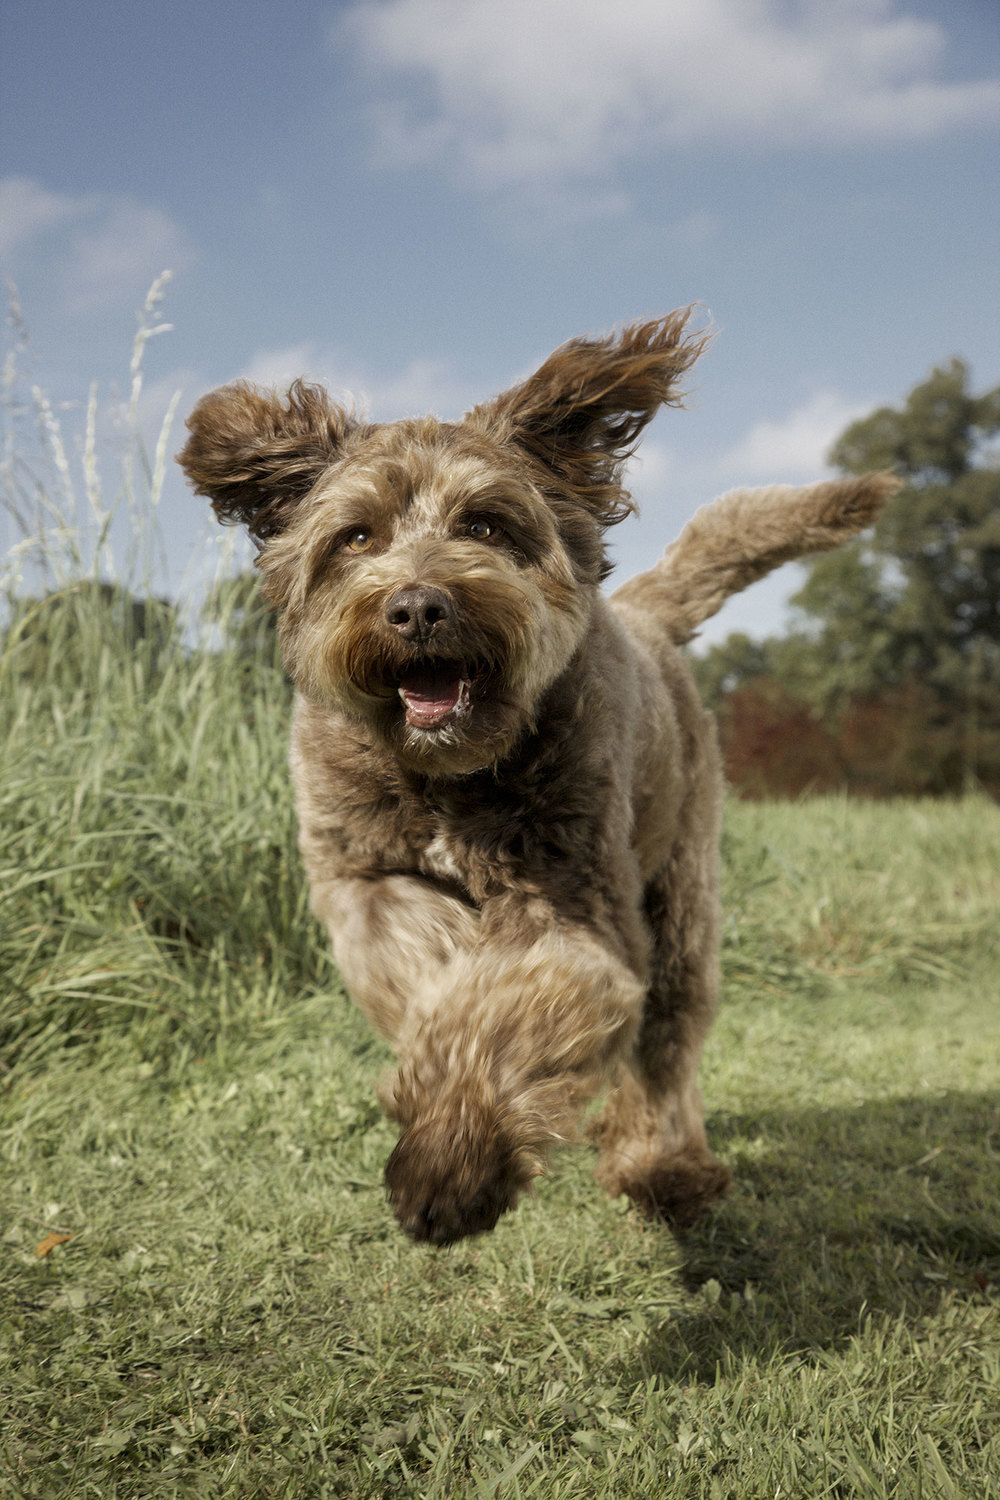 Dog running in field photograph